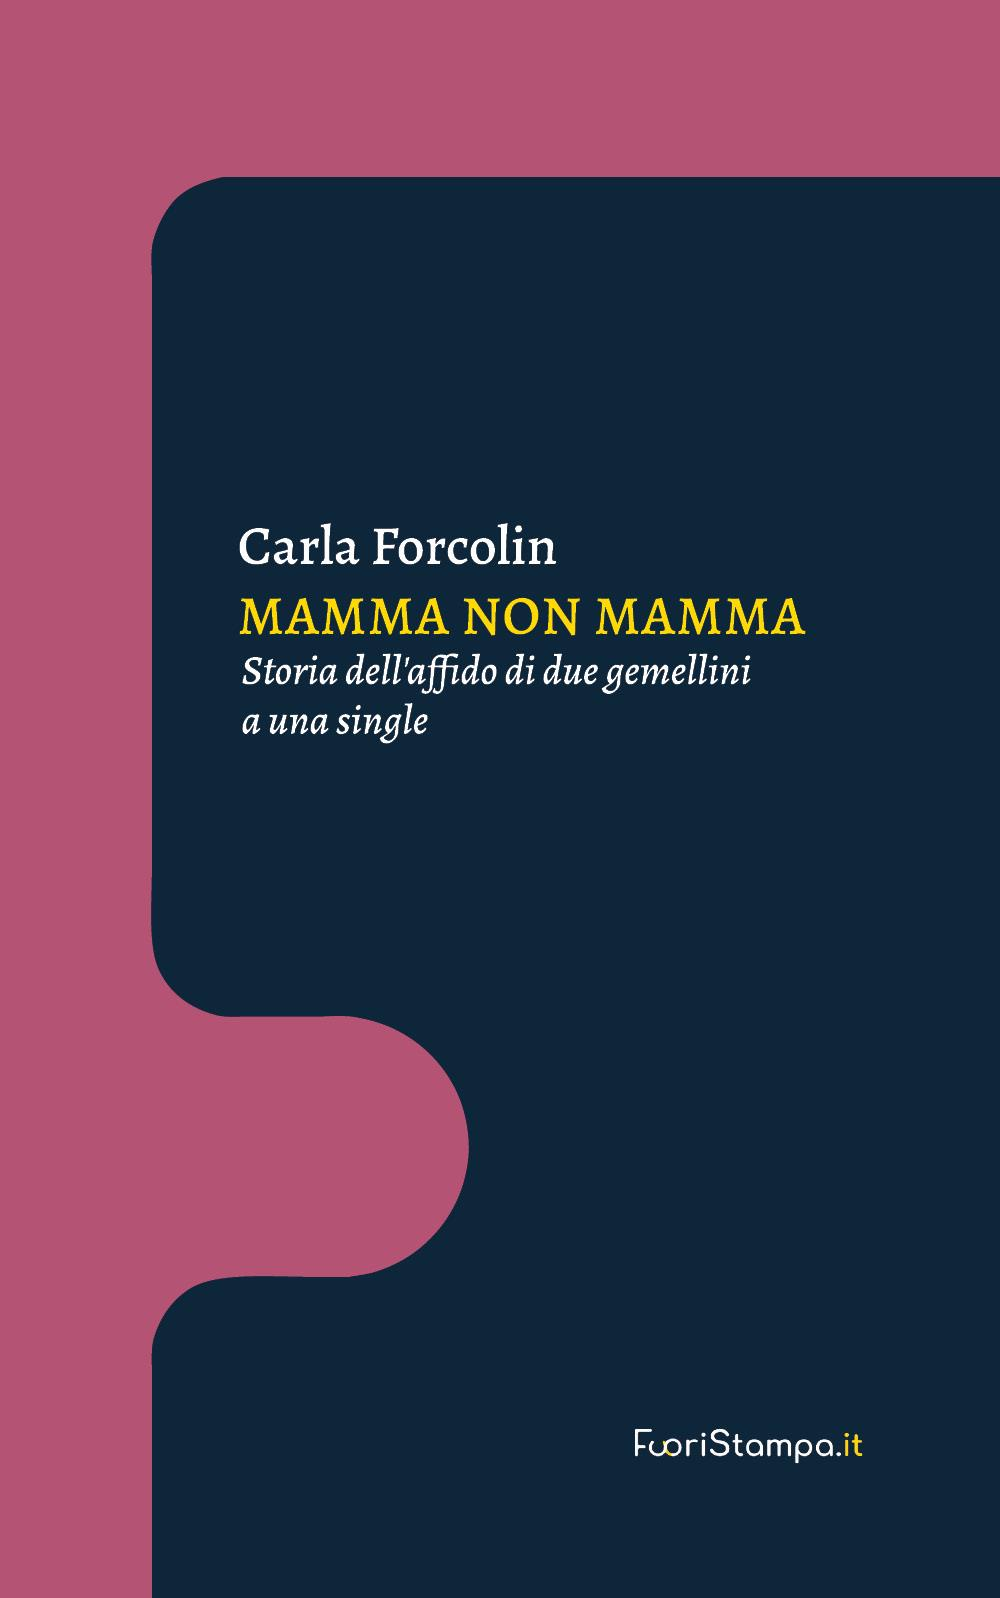 Mamma non mamma. Storia dell'affido di due gemellini a una single